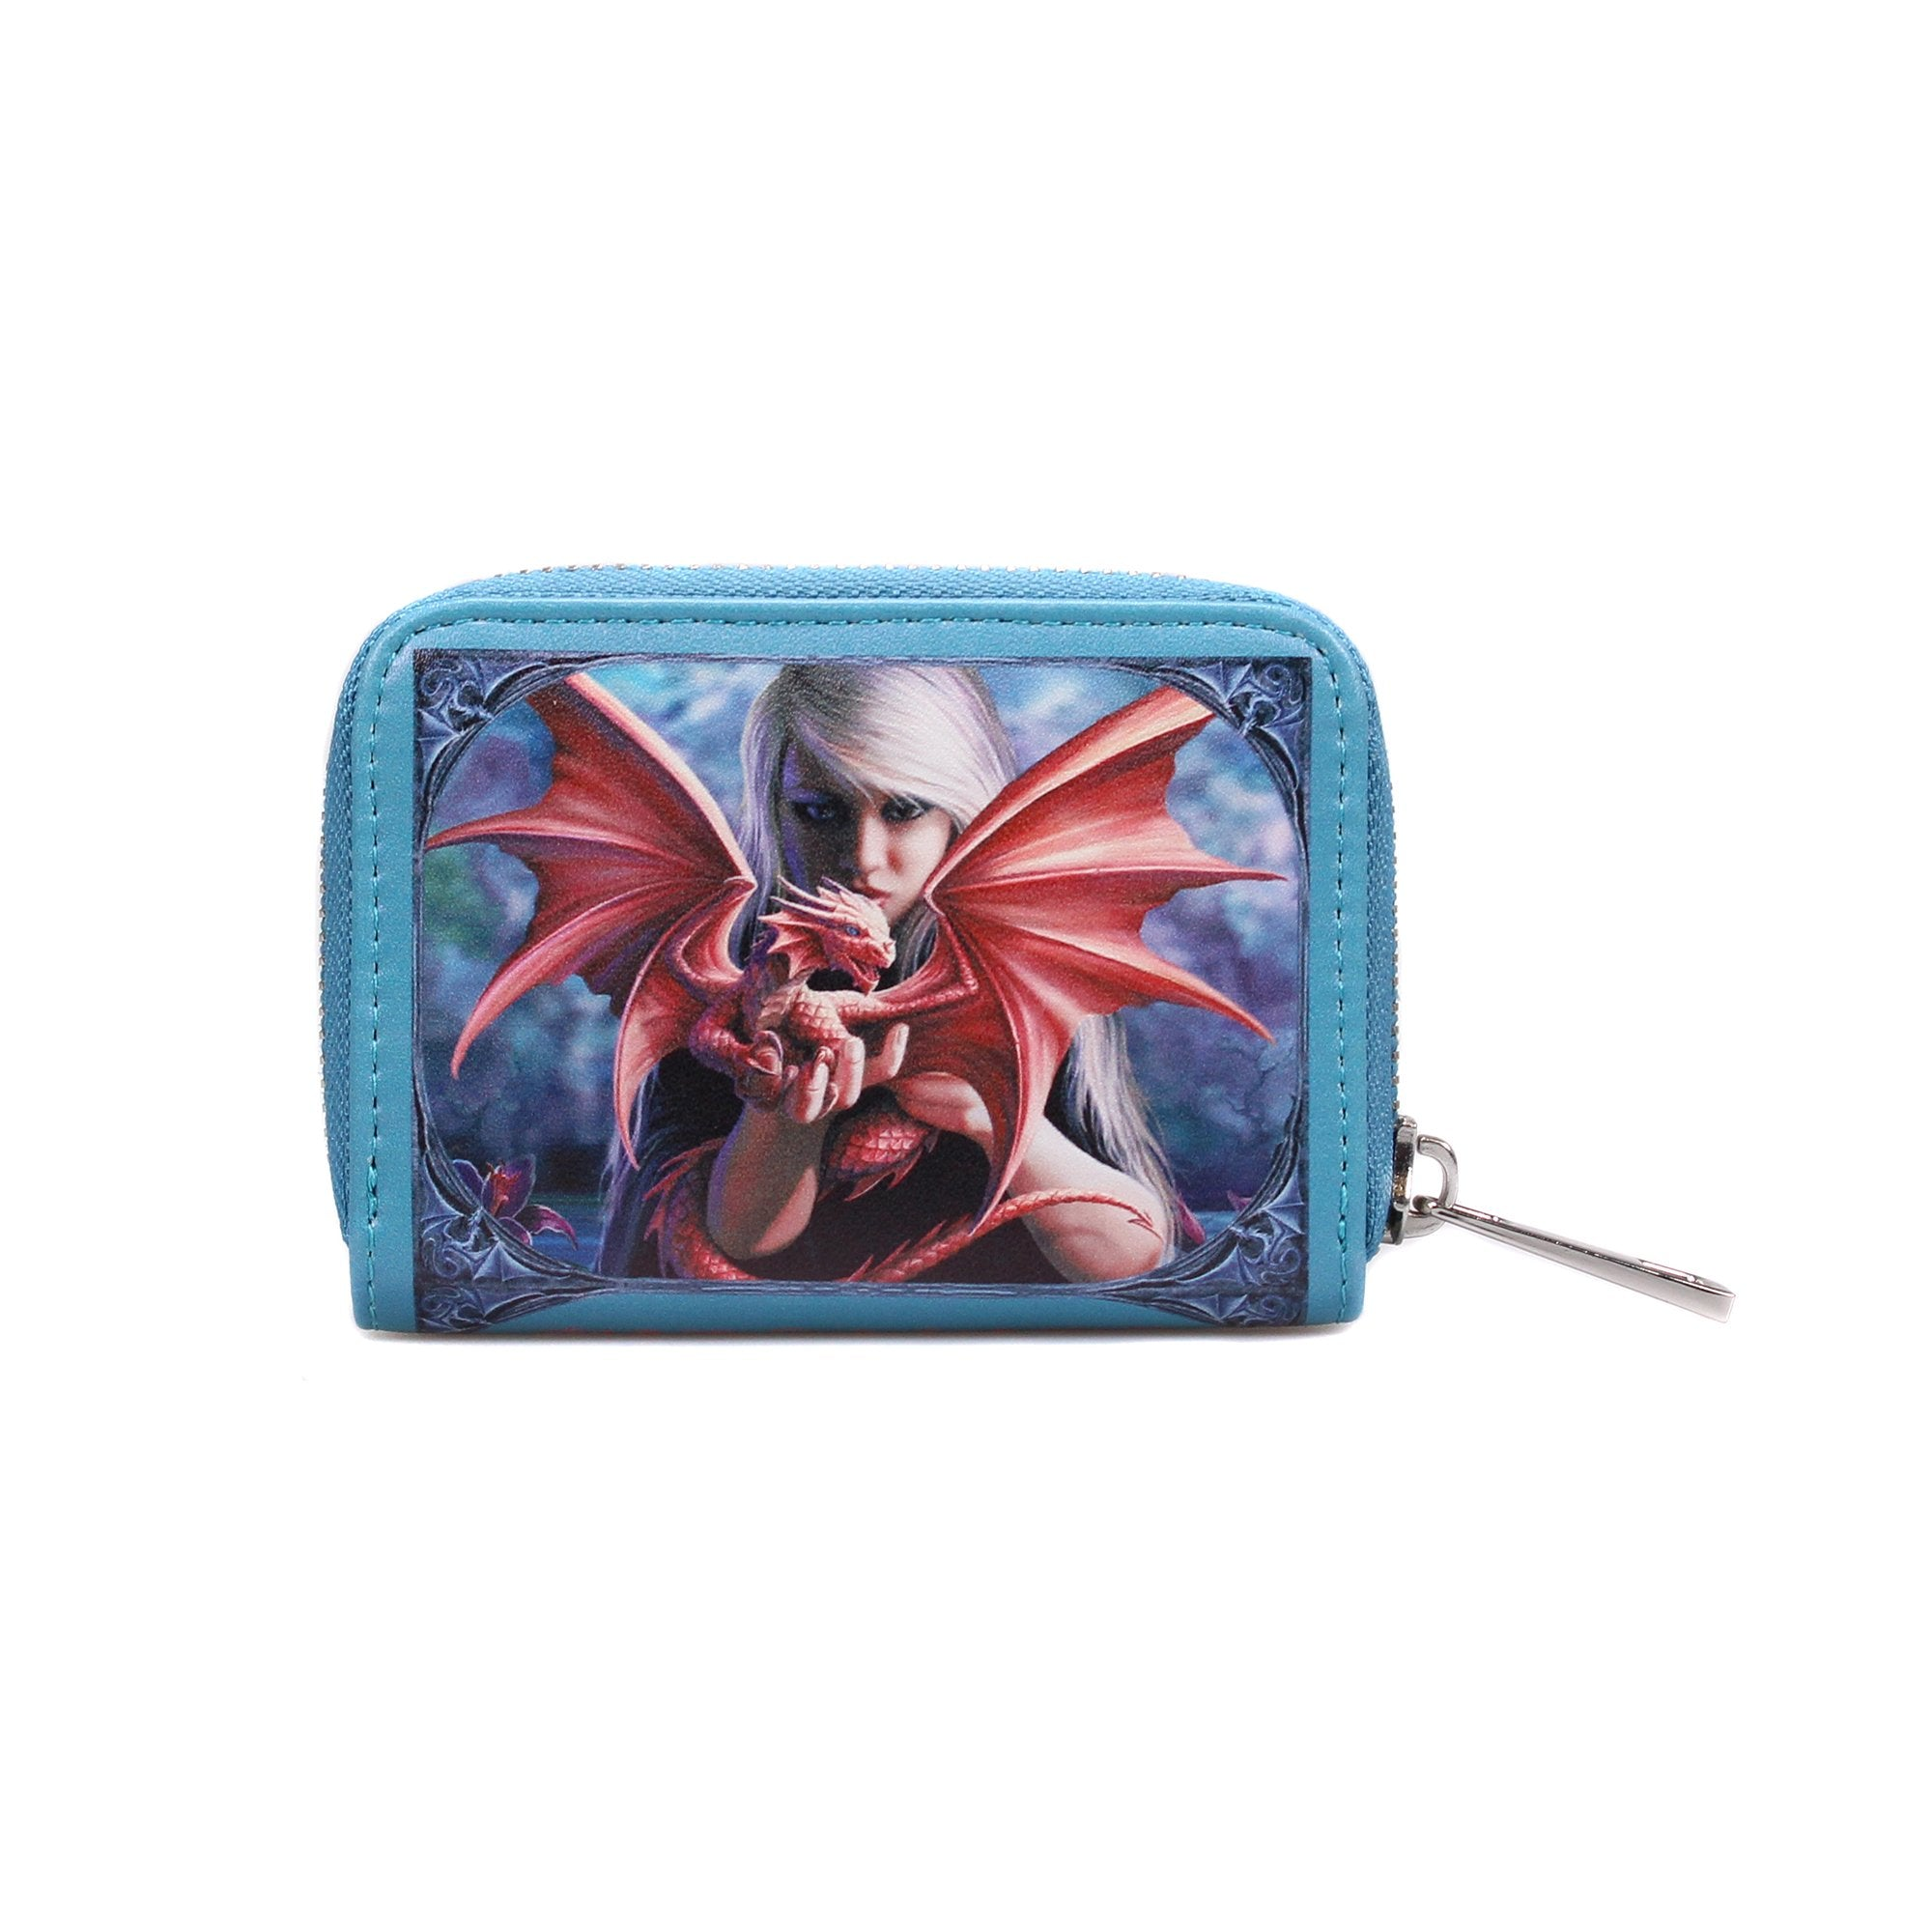 Anne Stokes Coin Purse - Dragonkin - Half Moon Bay US